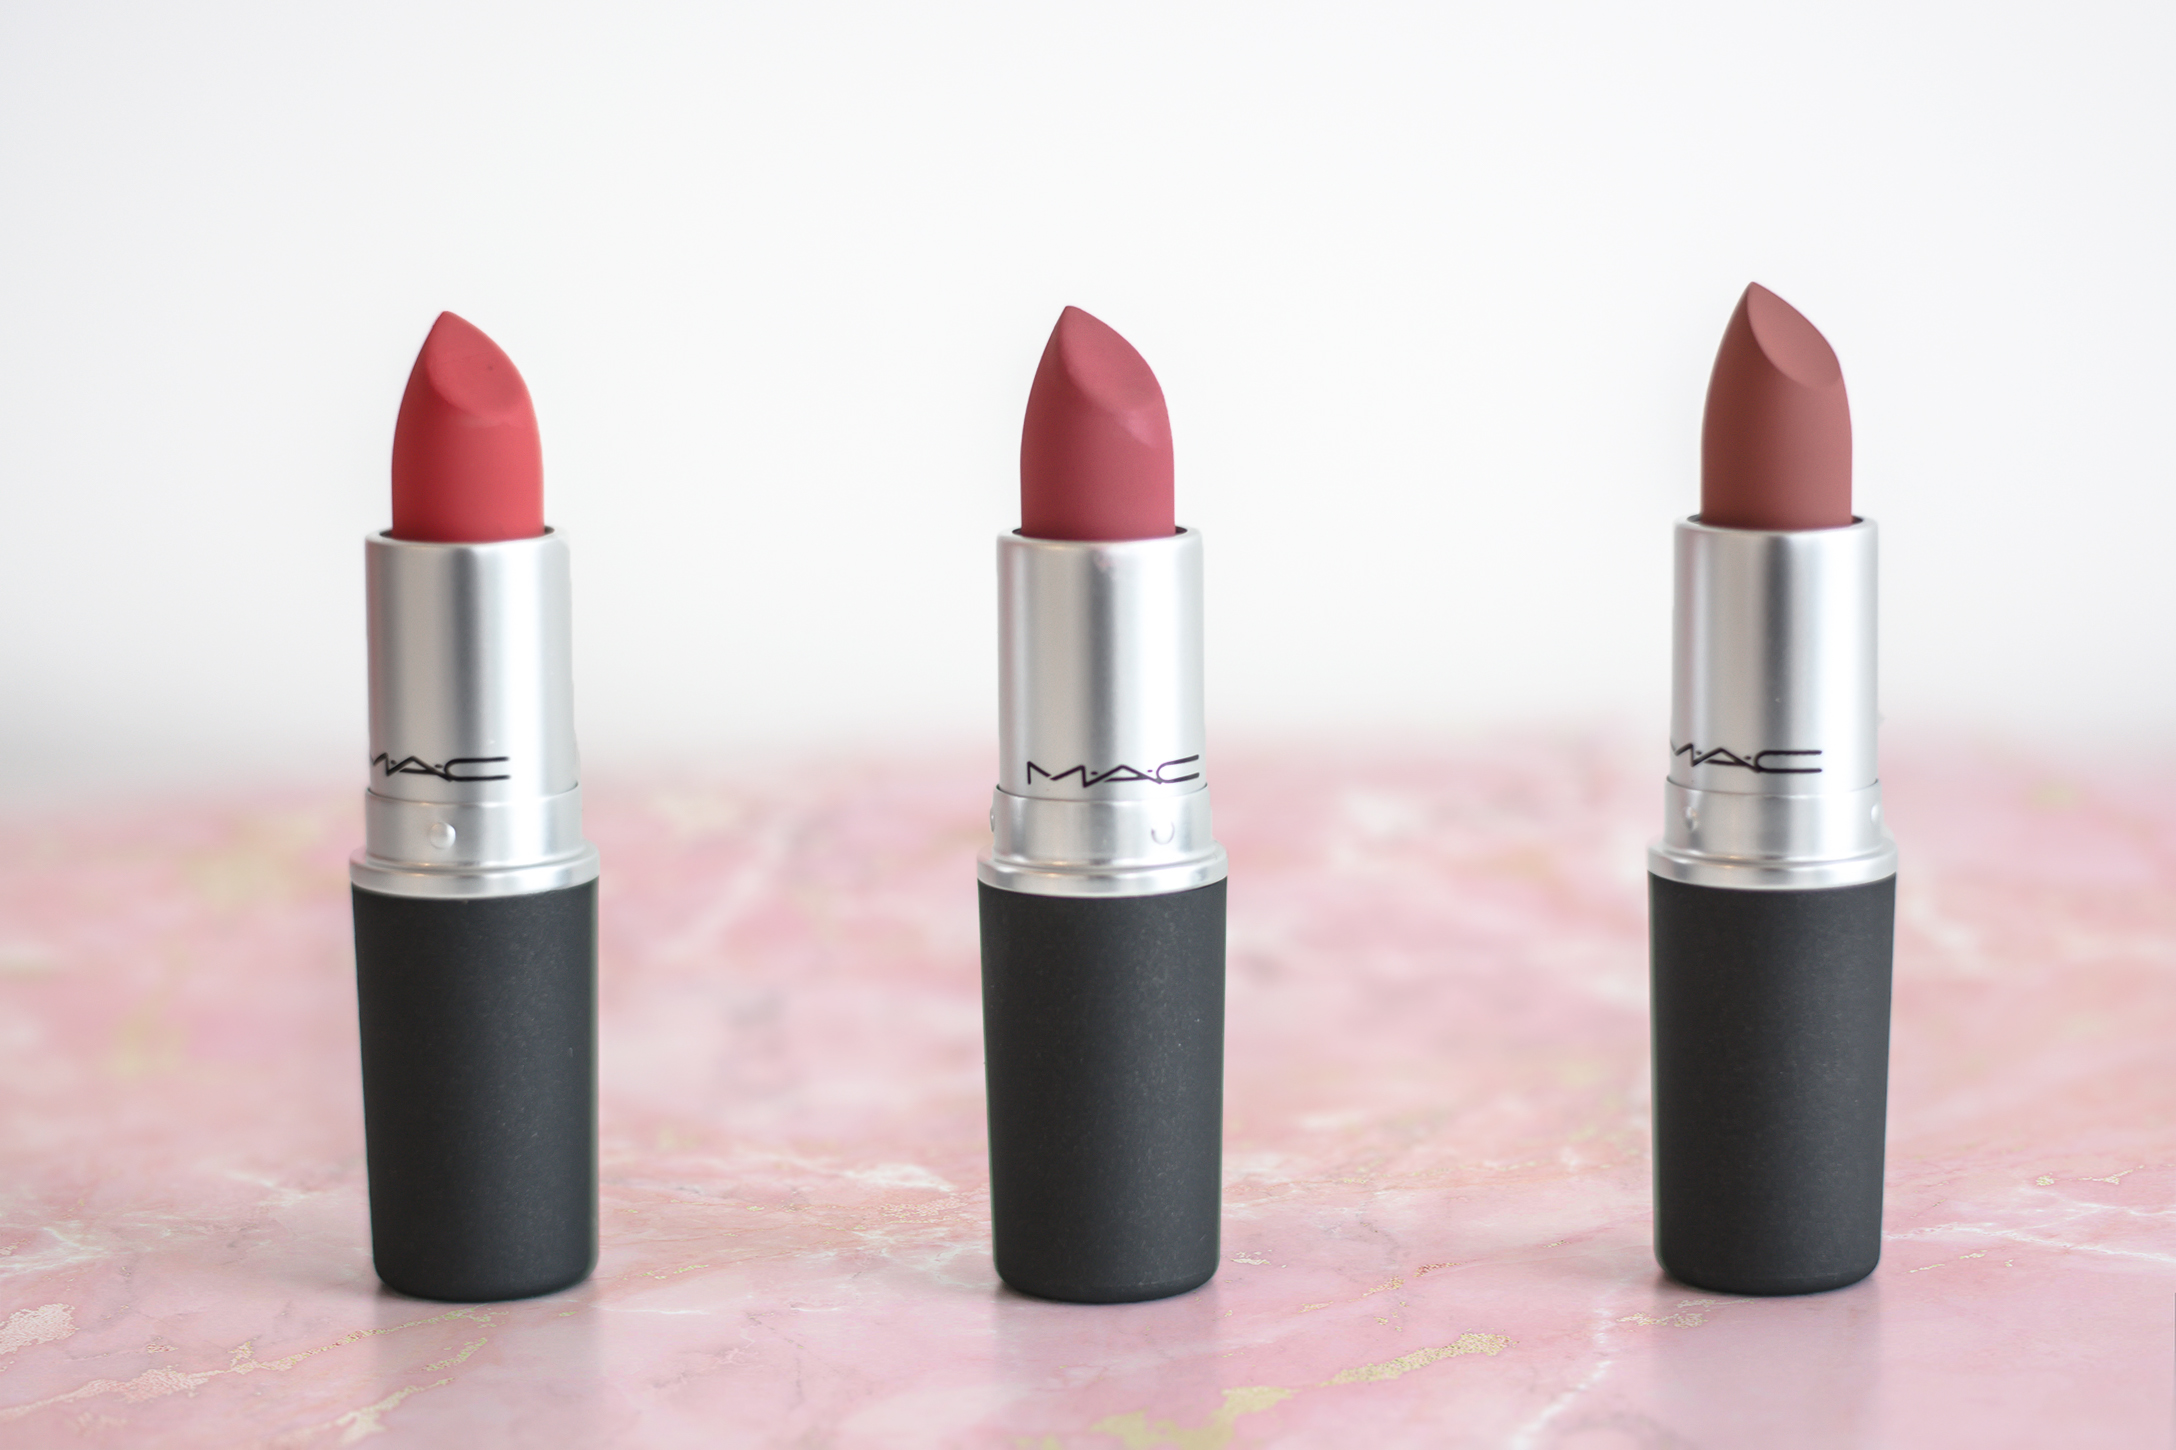 MAC Powder Kiss Lipsticks